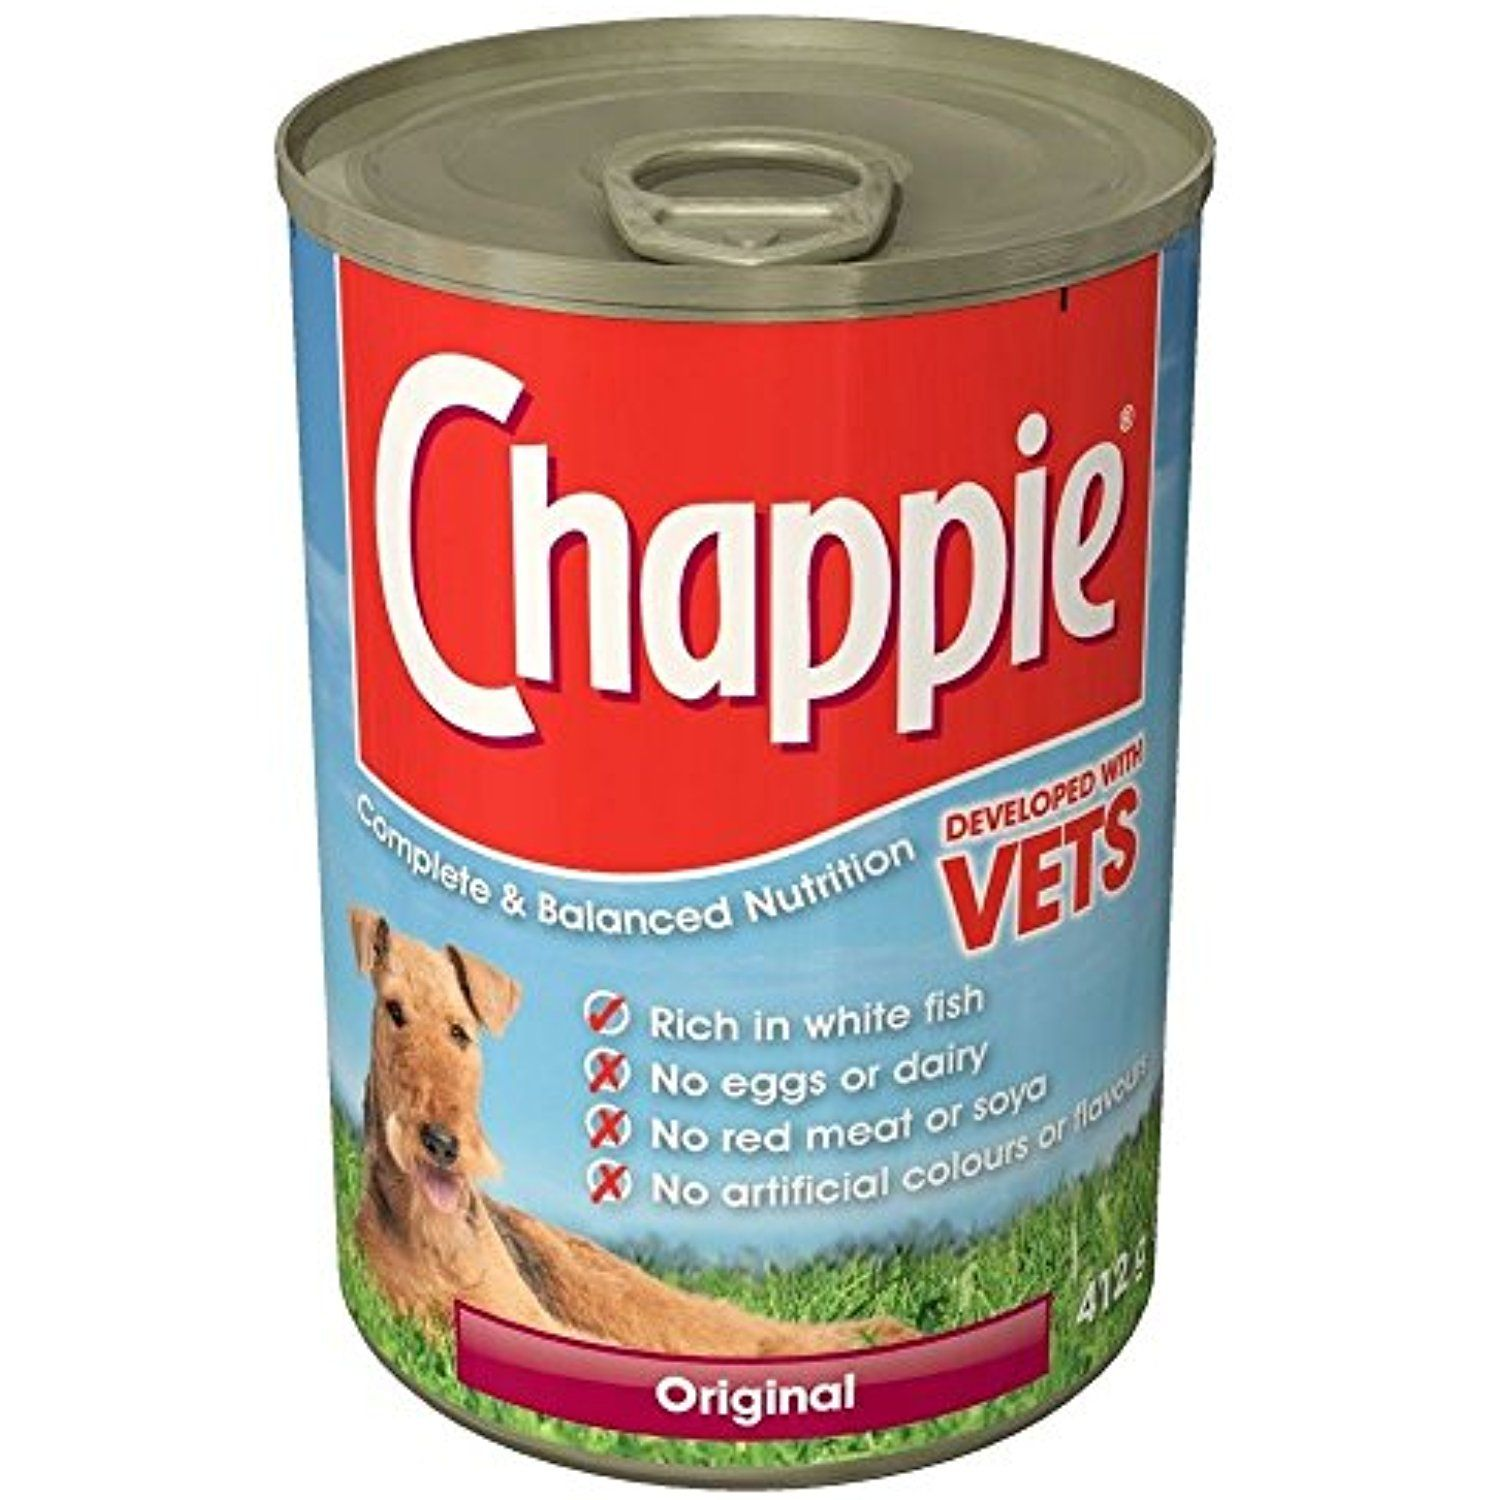 Chappie Original Dog Food 412g Pack Of 2 You Could Find